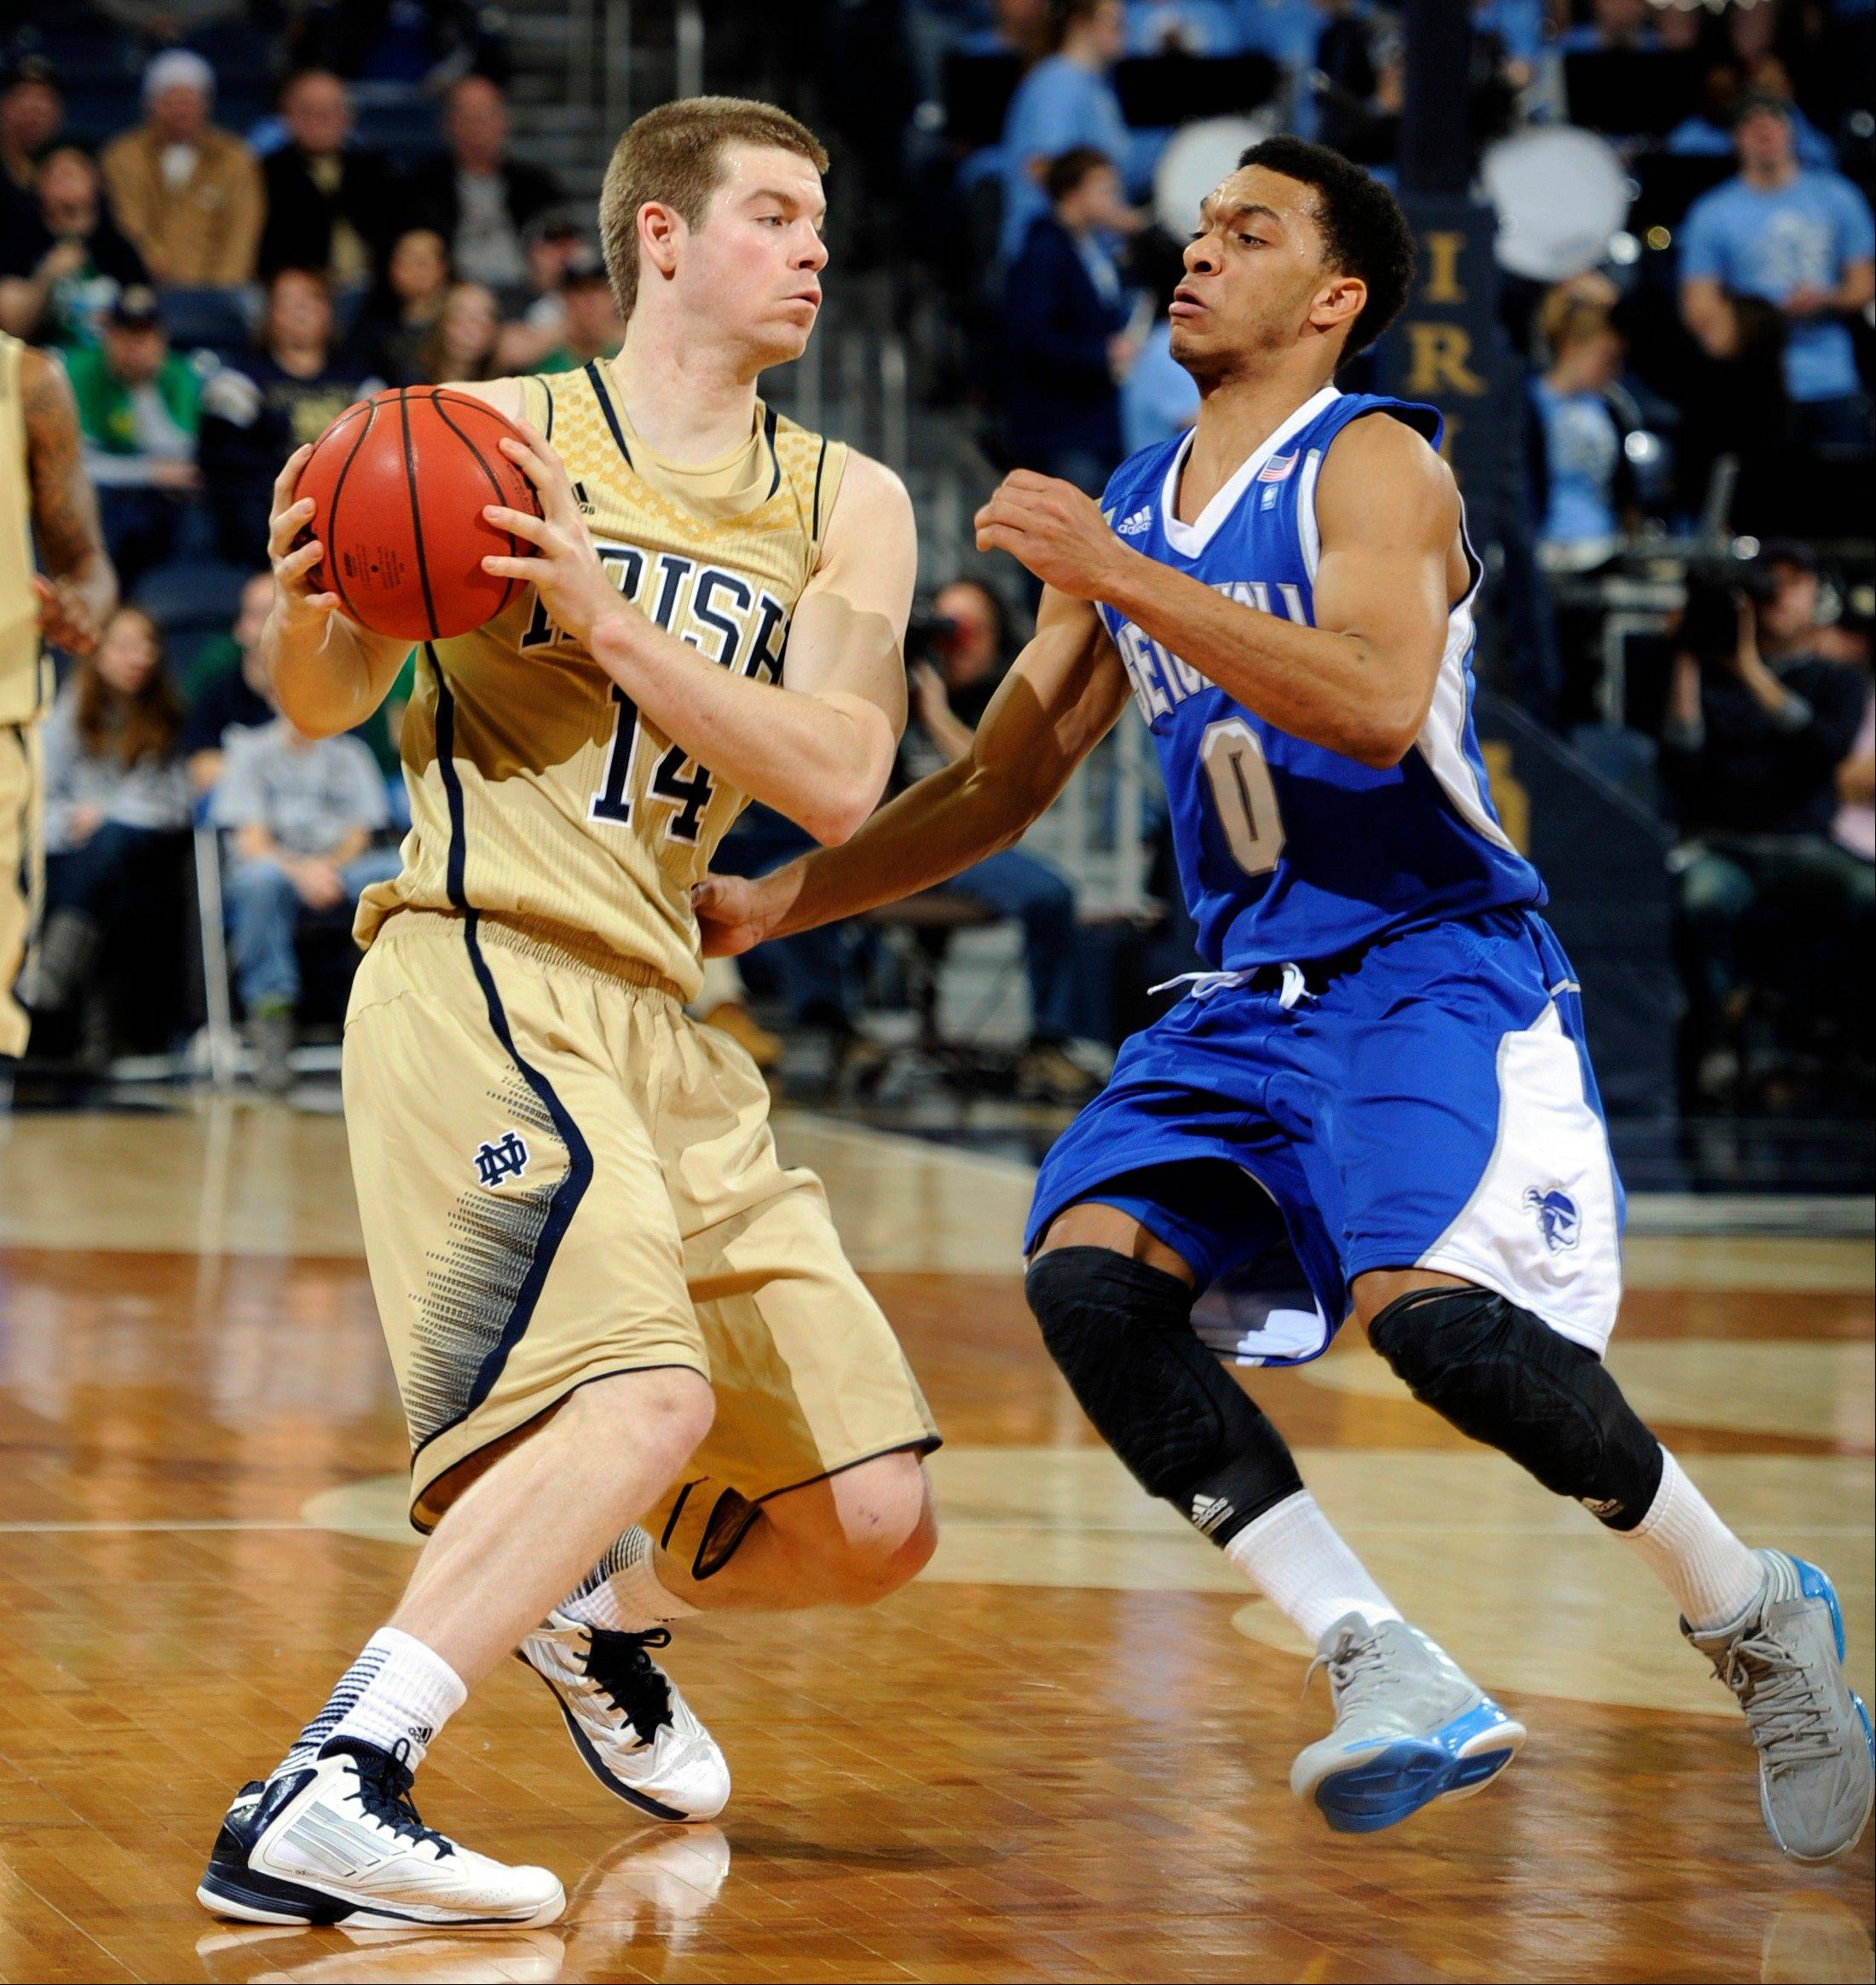 Notre Dame guard Scott Martin, left, gets ready to shoot as Seton Hall guard Tom Maayan defends the second half of an NCAA college basketball game wth Notre Dame Saturday, Jan. 5, 2013, in South Bend, Ind. Notre Dame won 93-74 with Martin leading all scorers with 22 points. (AP Photo/Joe Raymond)